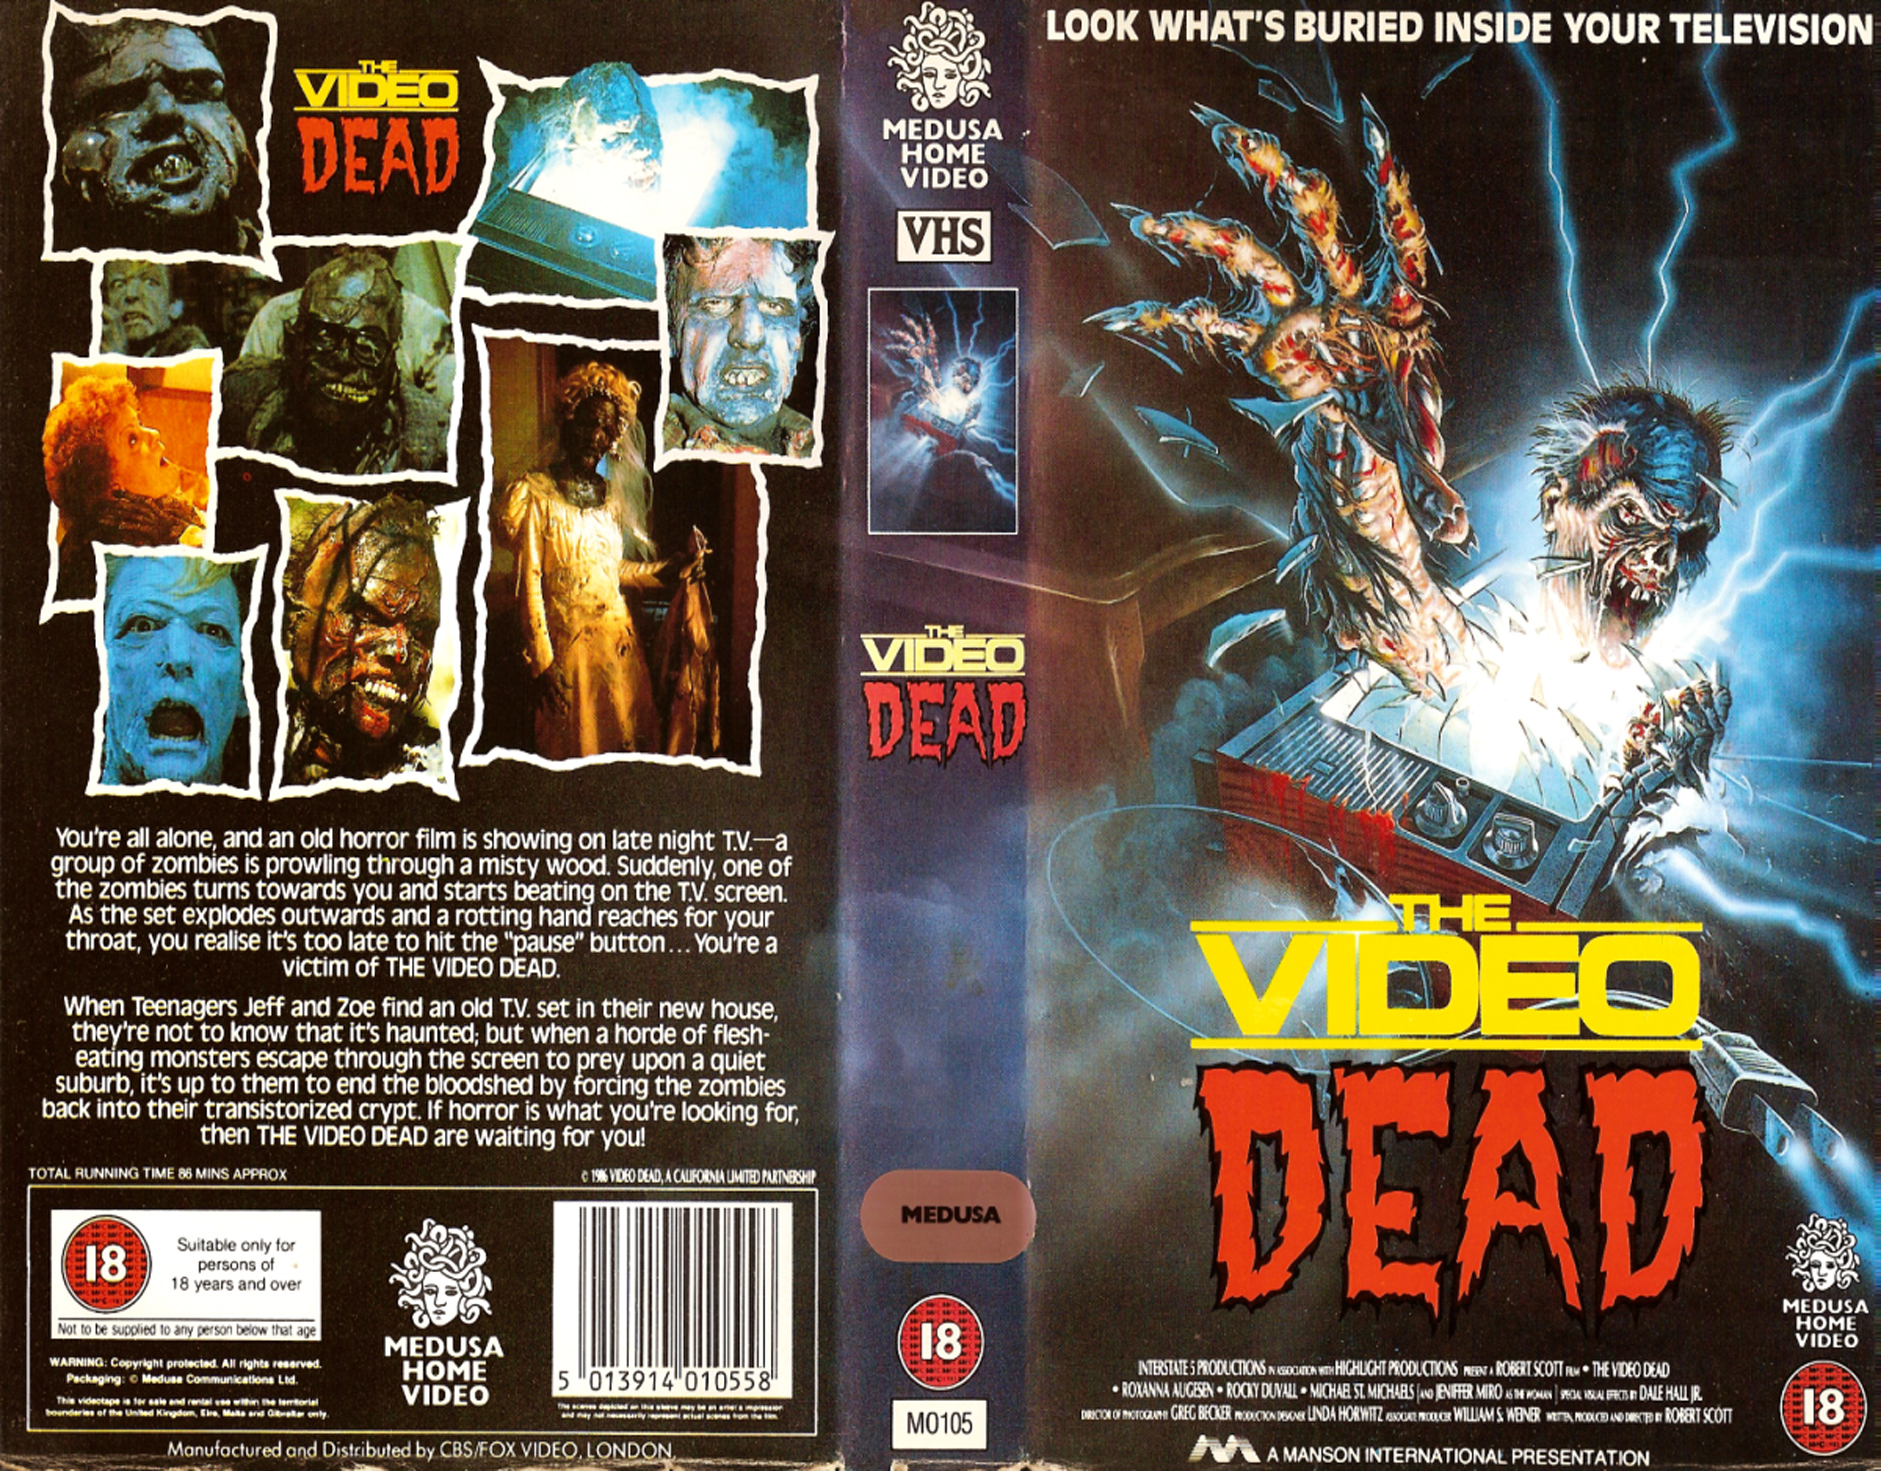 THE-VIDEO-DEAD-VHS-COVER